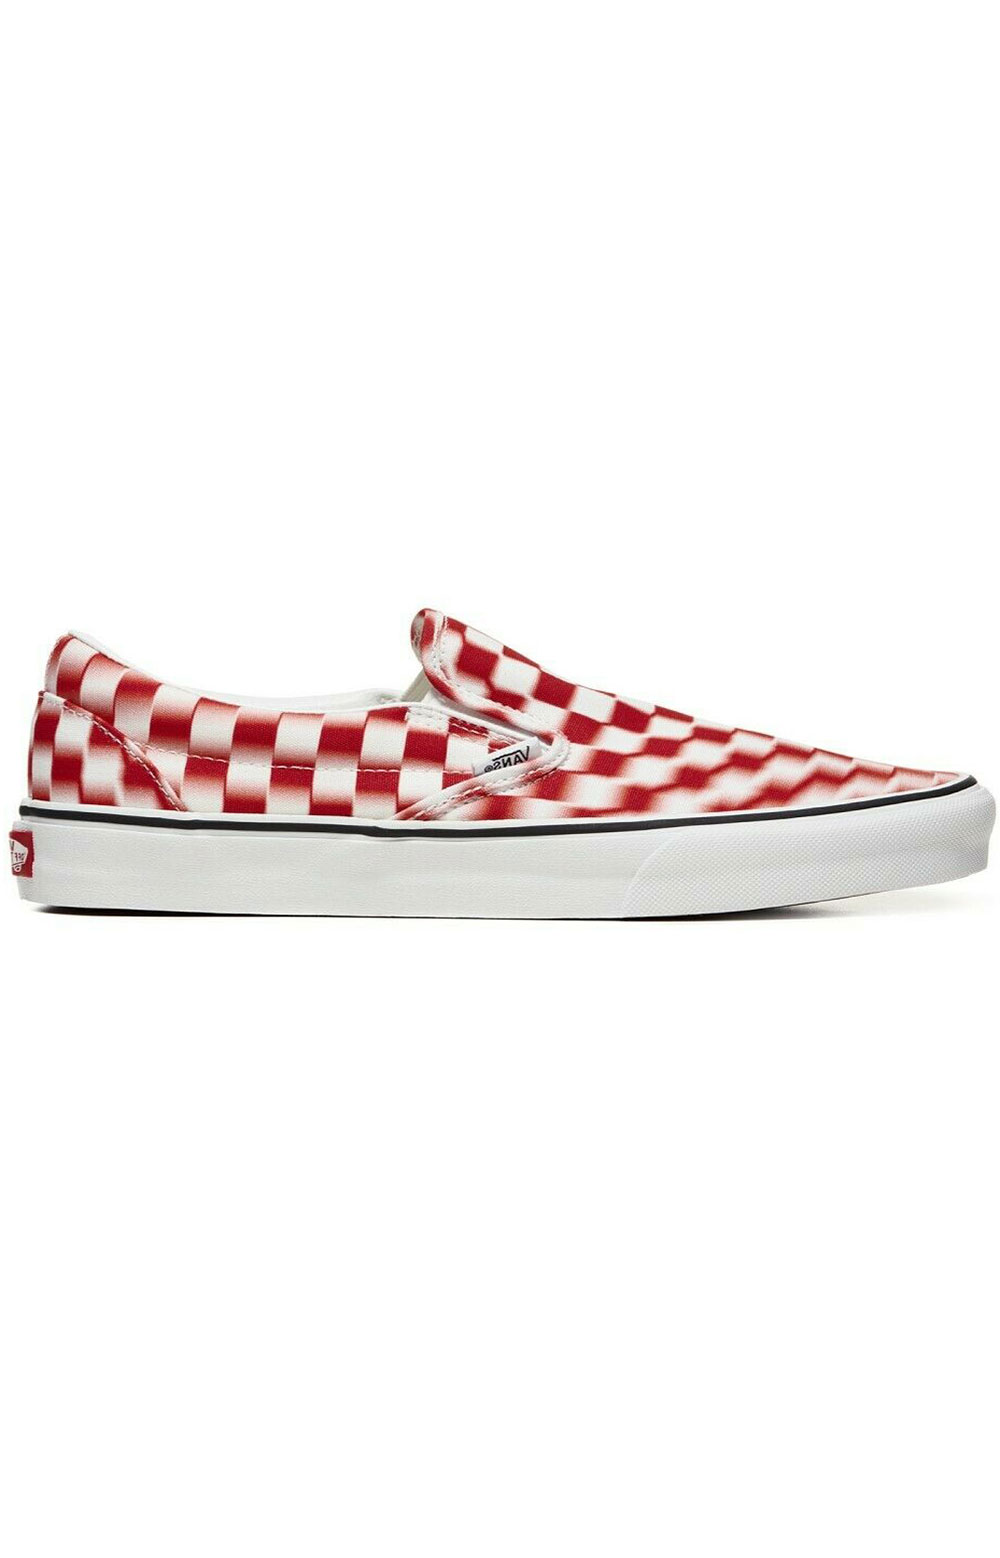 Vanswomens (U3817Z) Blur Check Classic Slip-On Shoes - True White/Red